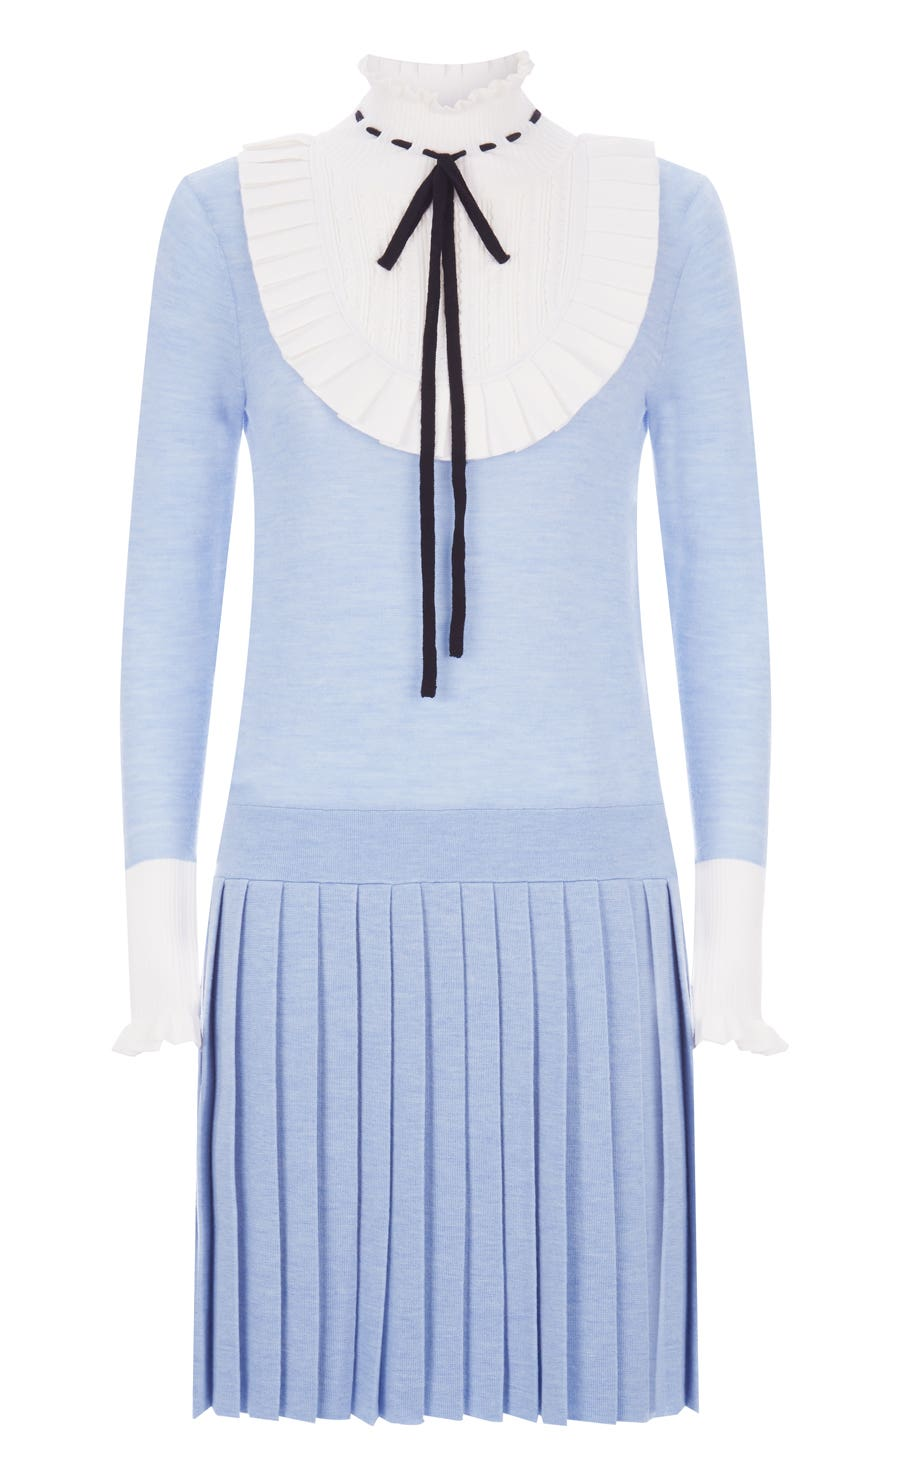 Sigmund Knit Mini Dress, Periwinkle